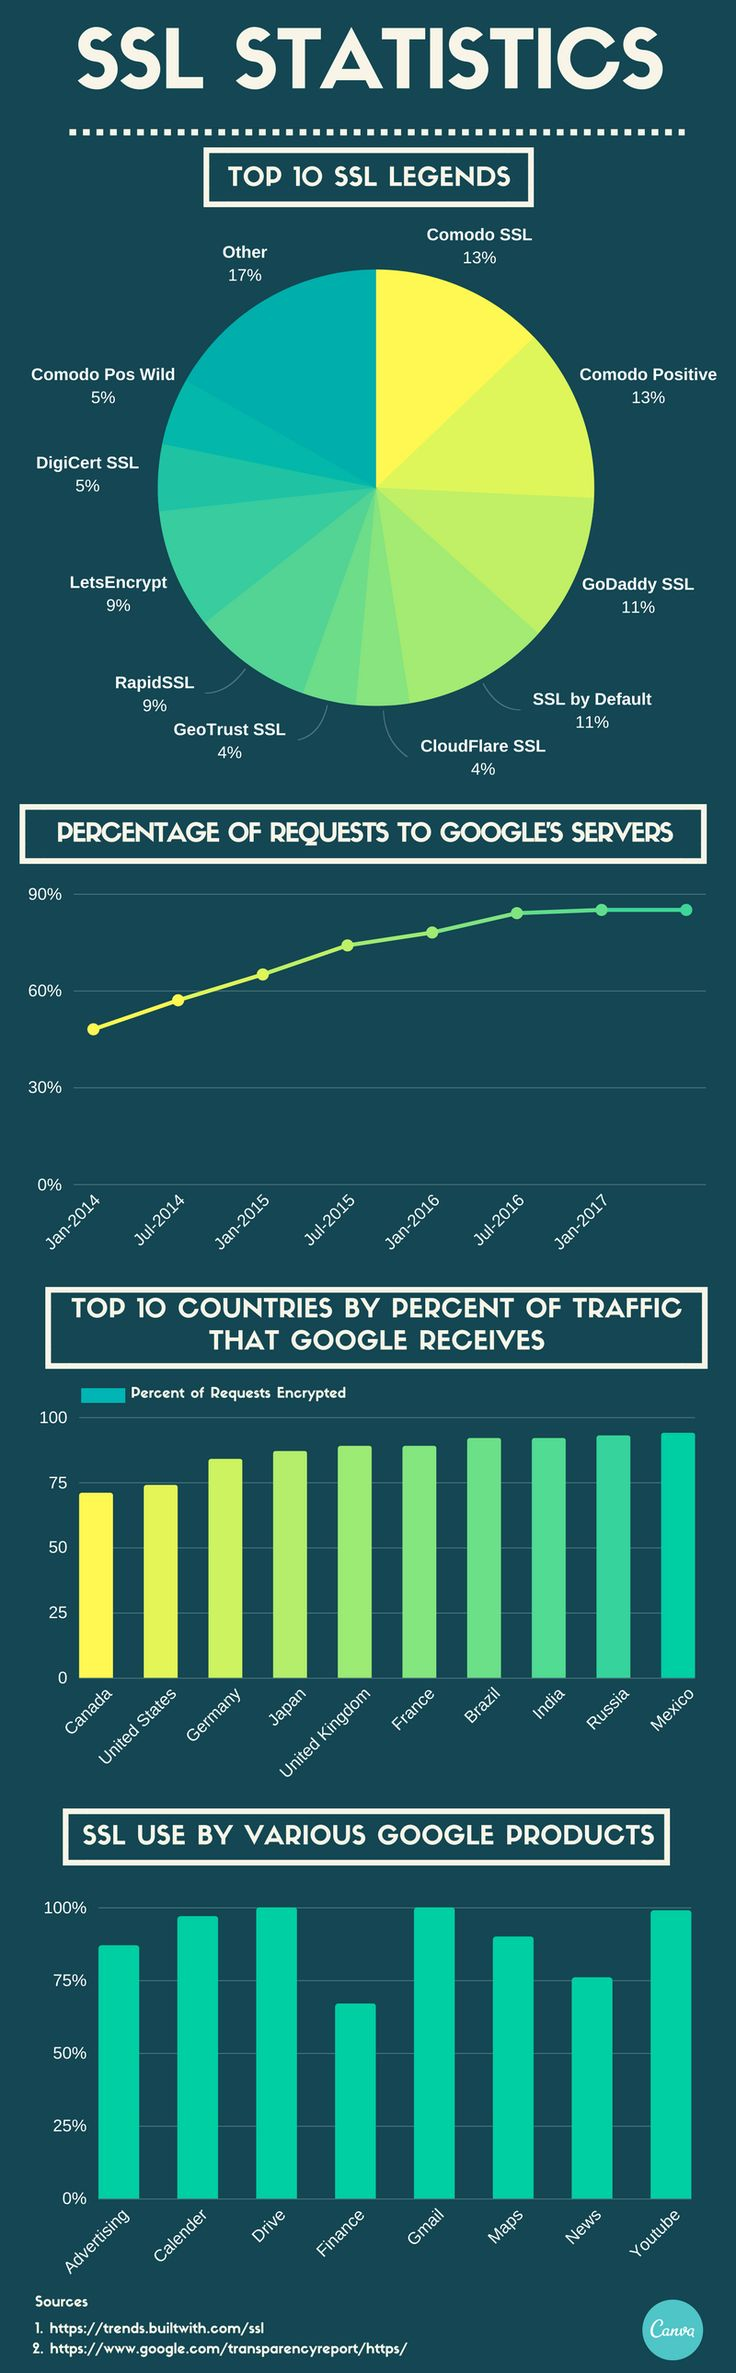 SSL Encrypted Connection Request Increase by 35% to Google Server in Last 2 Year - Arpin.in